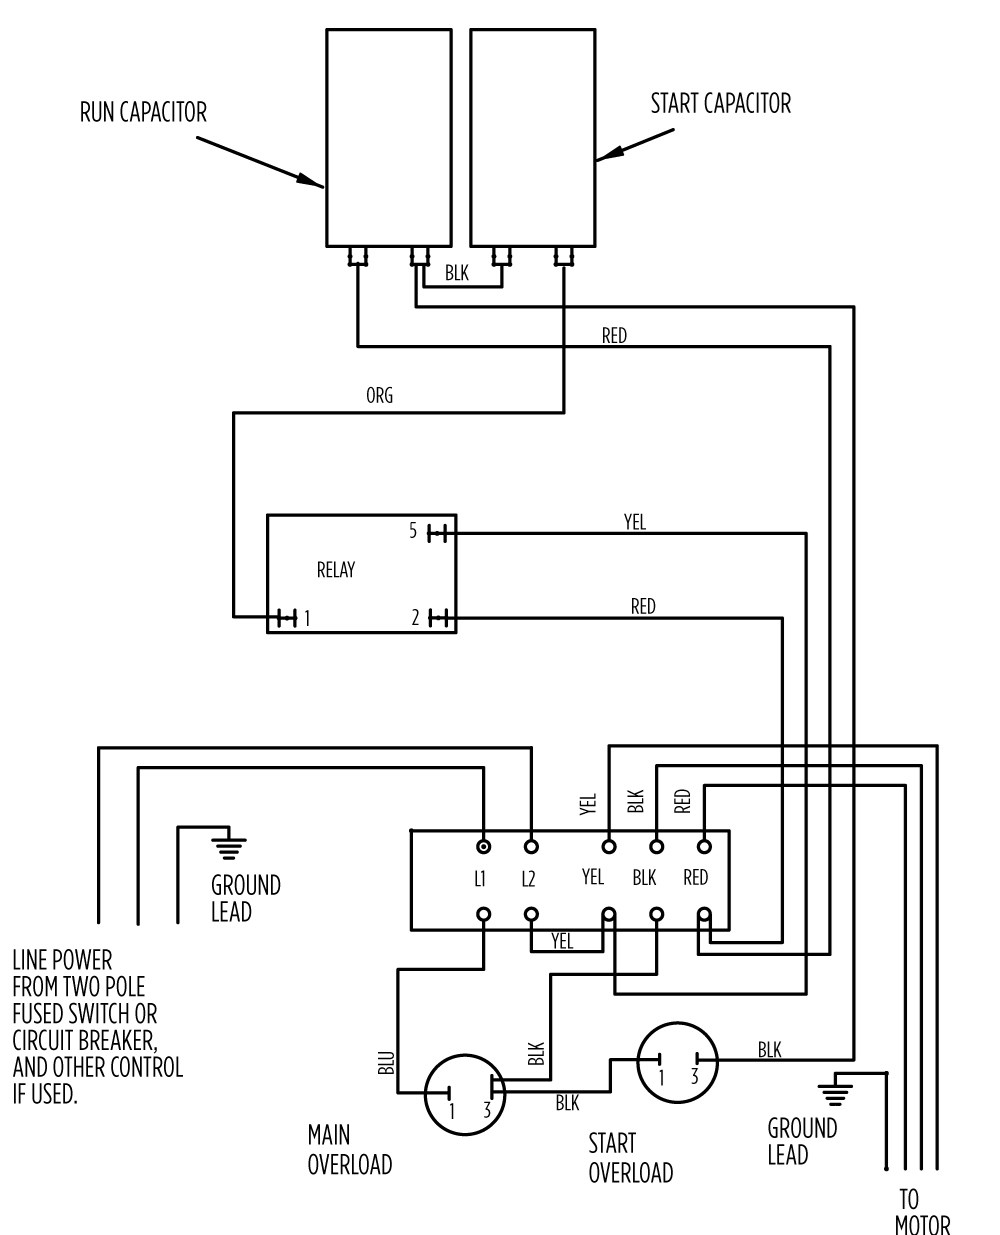 5 Hp Well Pump Control Box Wiring Diagram - Data Wiring Diagram Sump Pump Phase Wiring Diagram on pump control panel wiring diagram, booster pump wiring diagram, two sump pump diagram, ejector pump wiring diagram, float switch wiring diagram, hayward super pump wiring diagram, oil pump wiring diagram, diaphragm pump wiring diagram, wayne pump wiring diagram, sewer pump wiring diagram, deck wiring diagram, sump pump motor diagram, little giant pump wiring diagram, liberty pump wiring diagram, dehumidifier wiring diagram, submersible pump wiring diagram, submersible sump pump diagram, how does sump pump work diagram, hayward electric motor wiring diagram, valve wiring diagram,